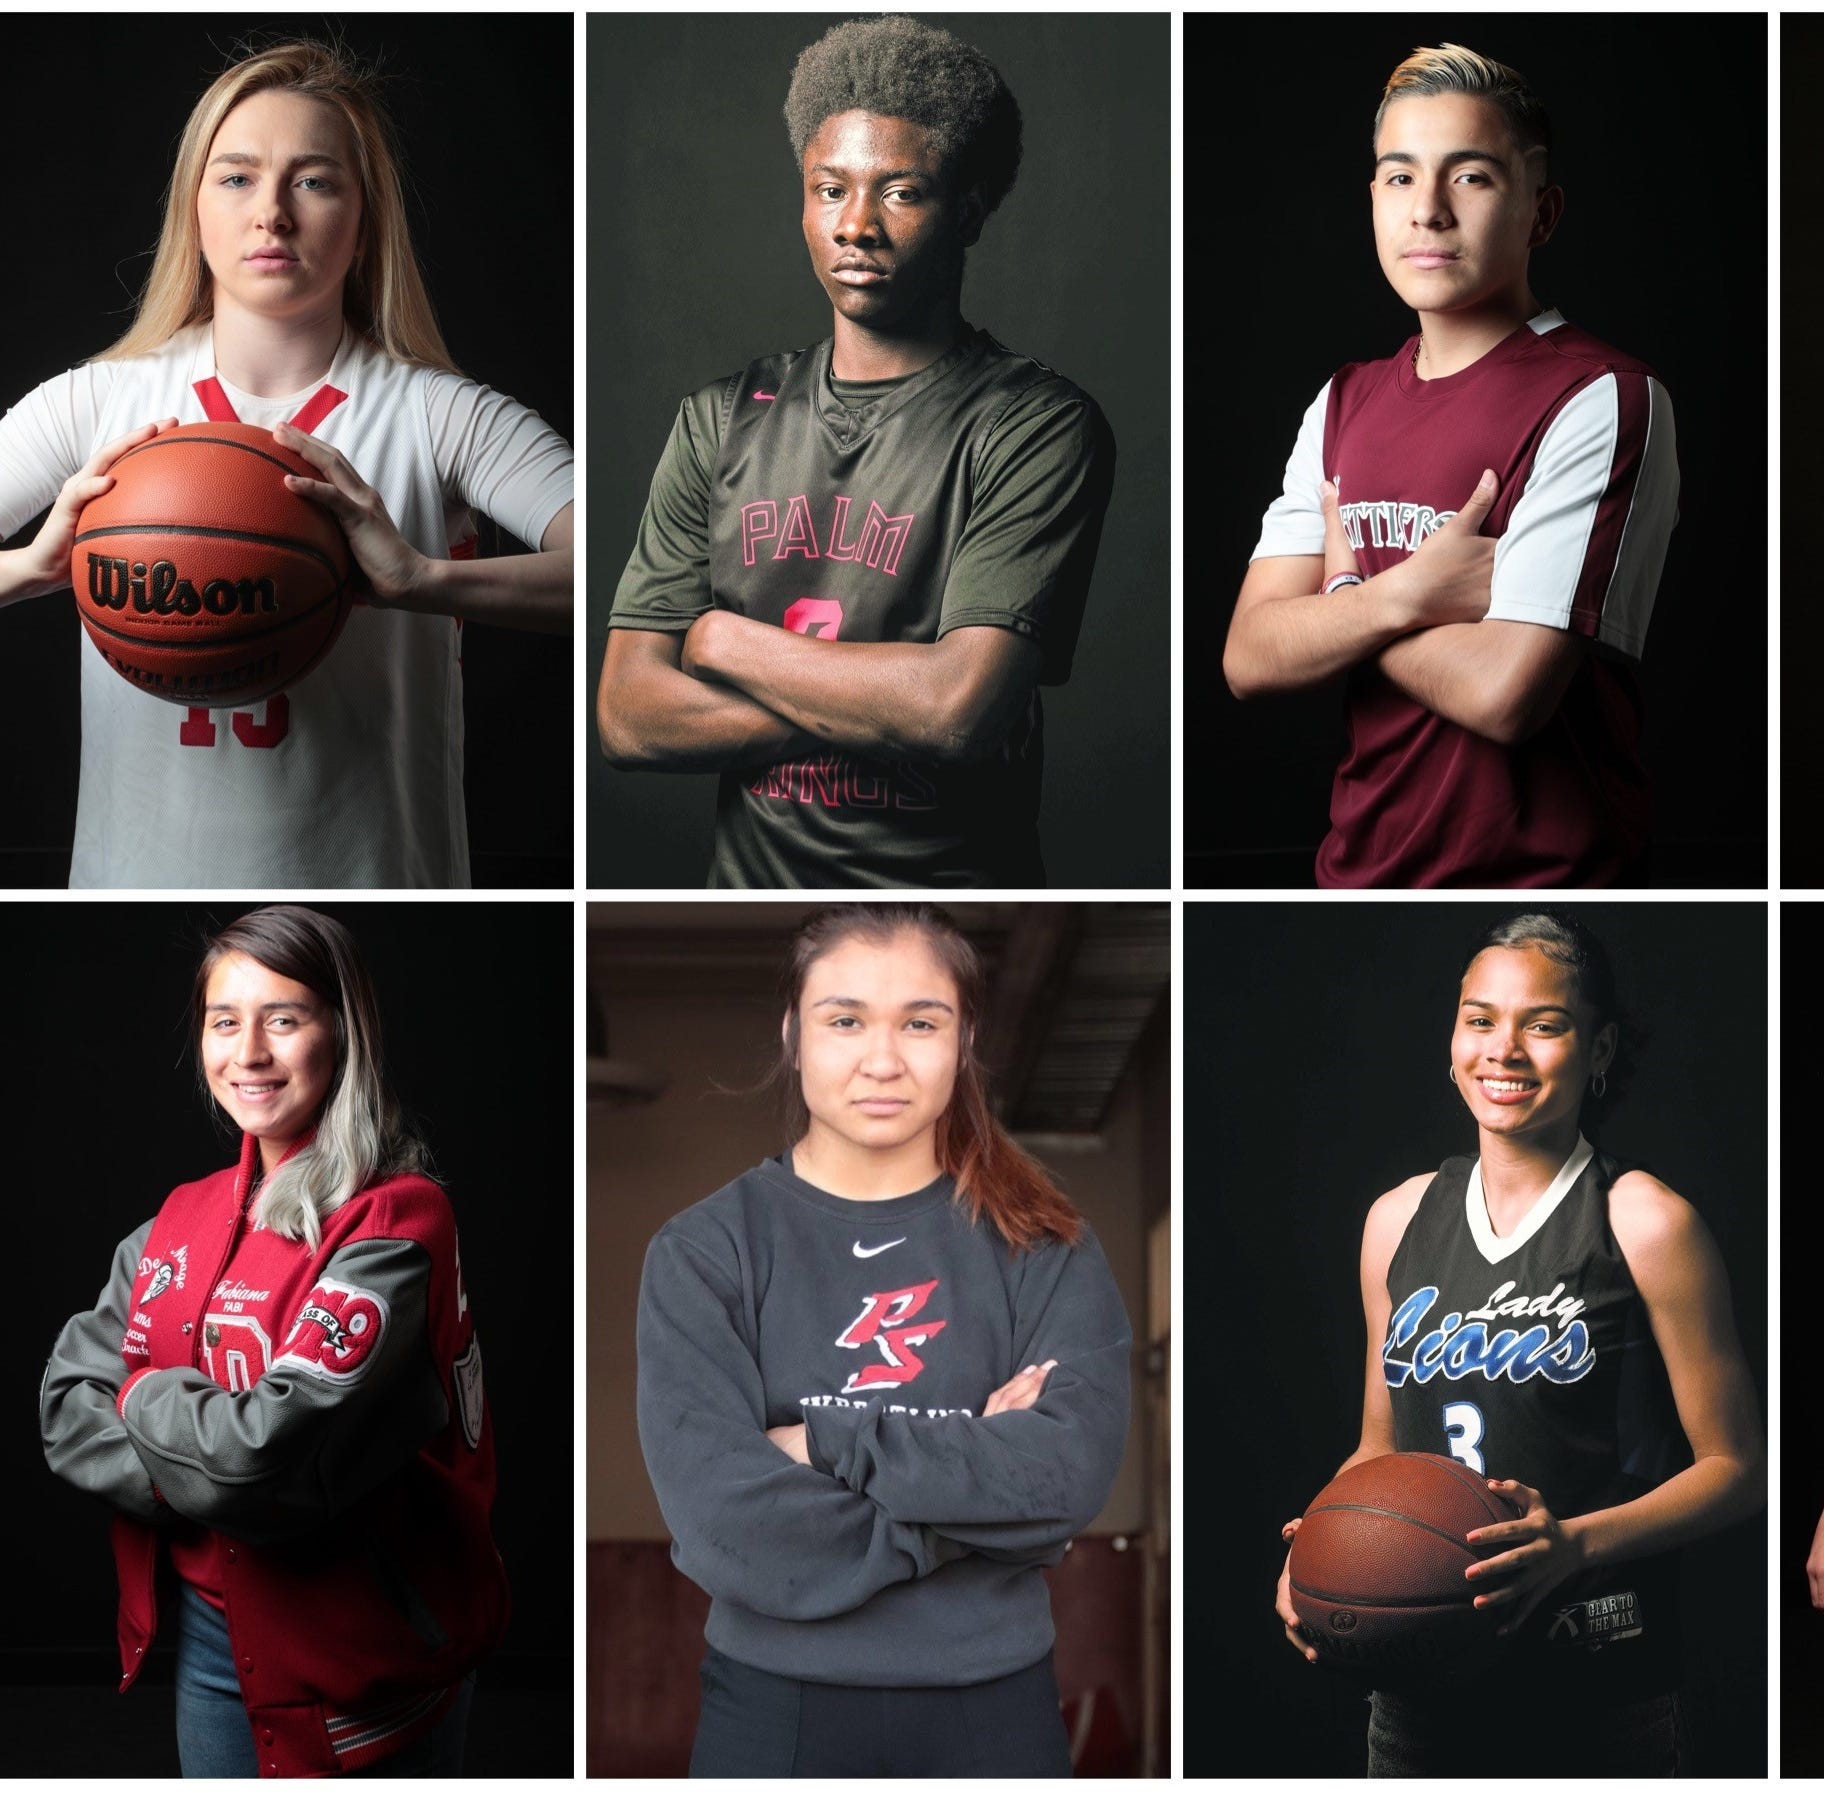 The Elite Eight: Meet the top athletes from the best winter sports season the desert has ever seen